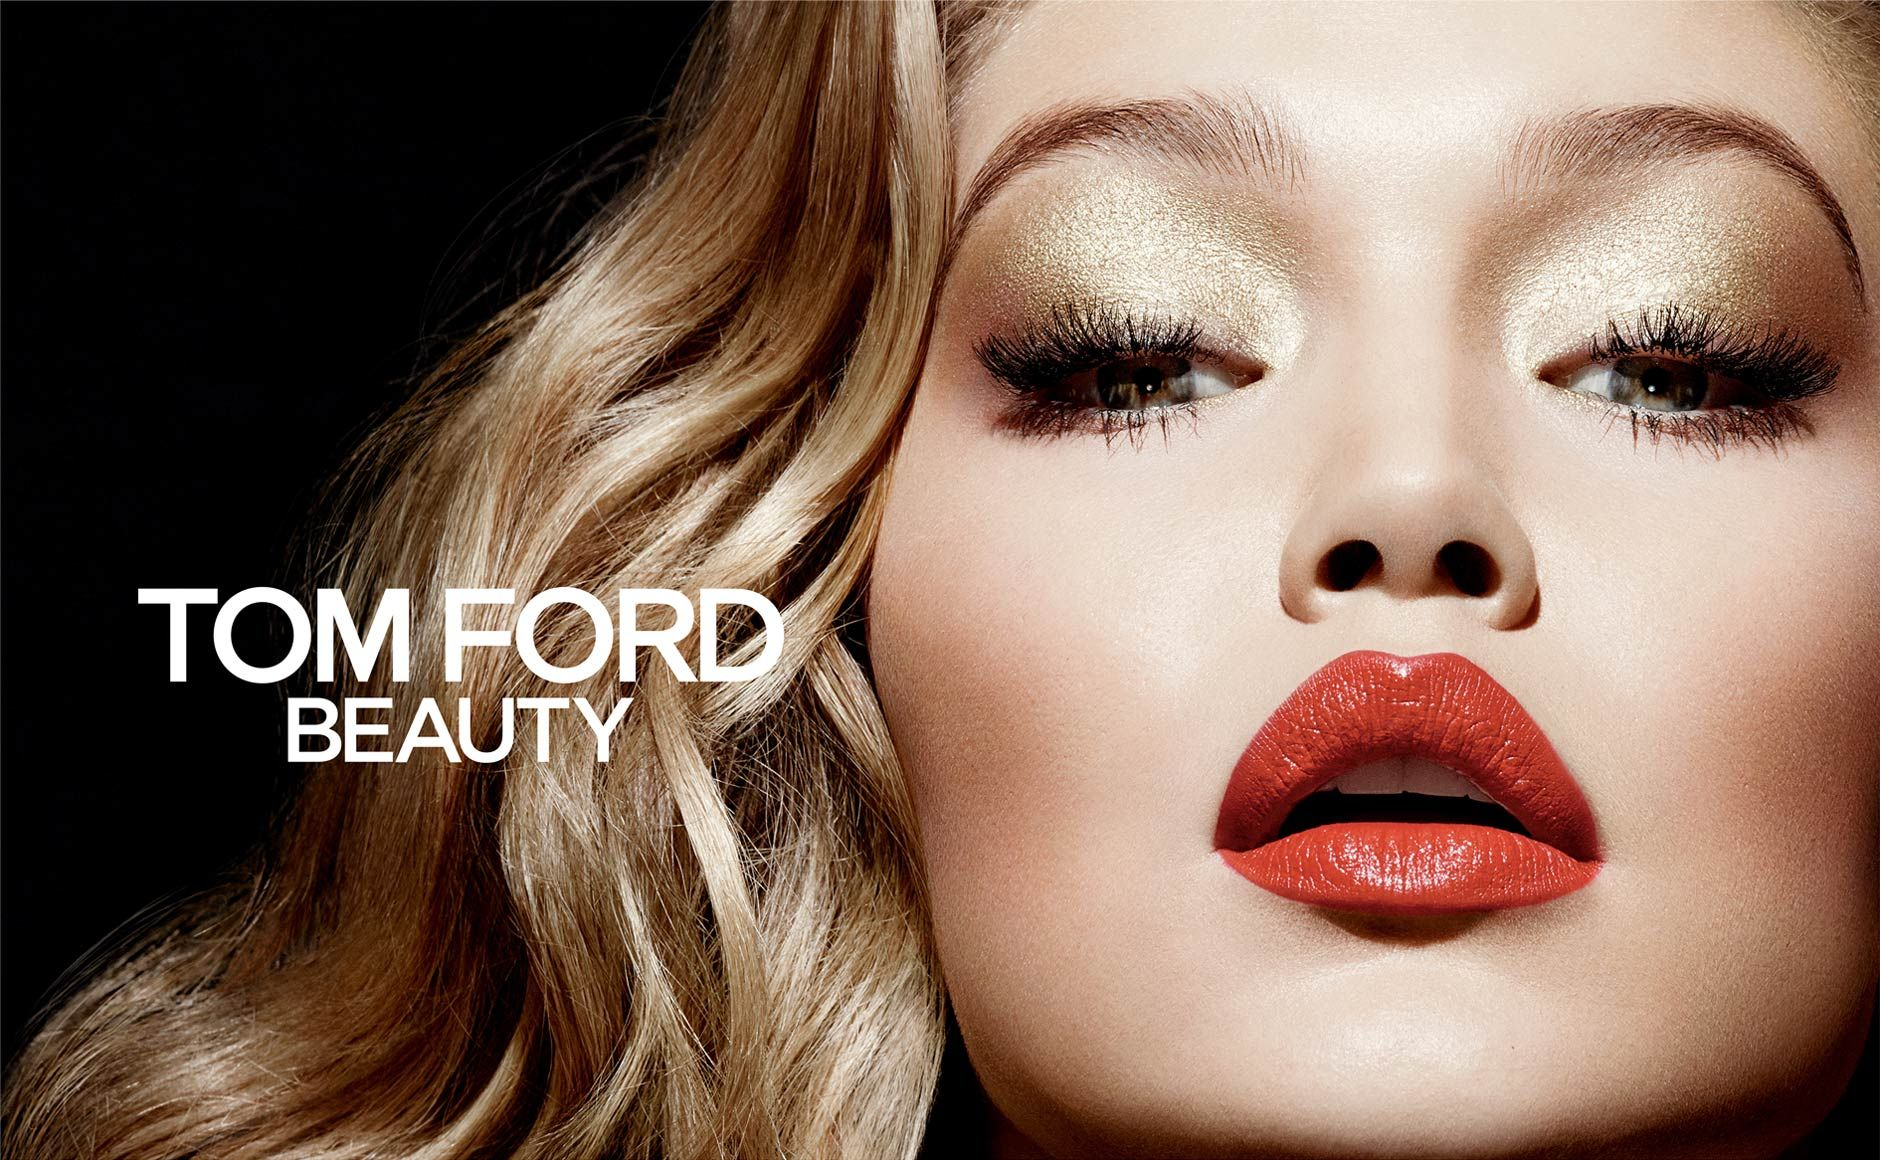 advertising f tom project smith beauty items portfolio description ford nancy